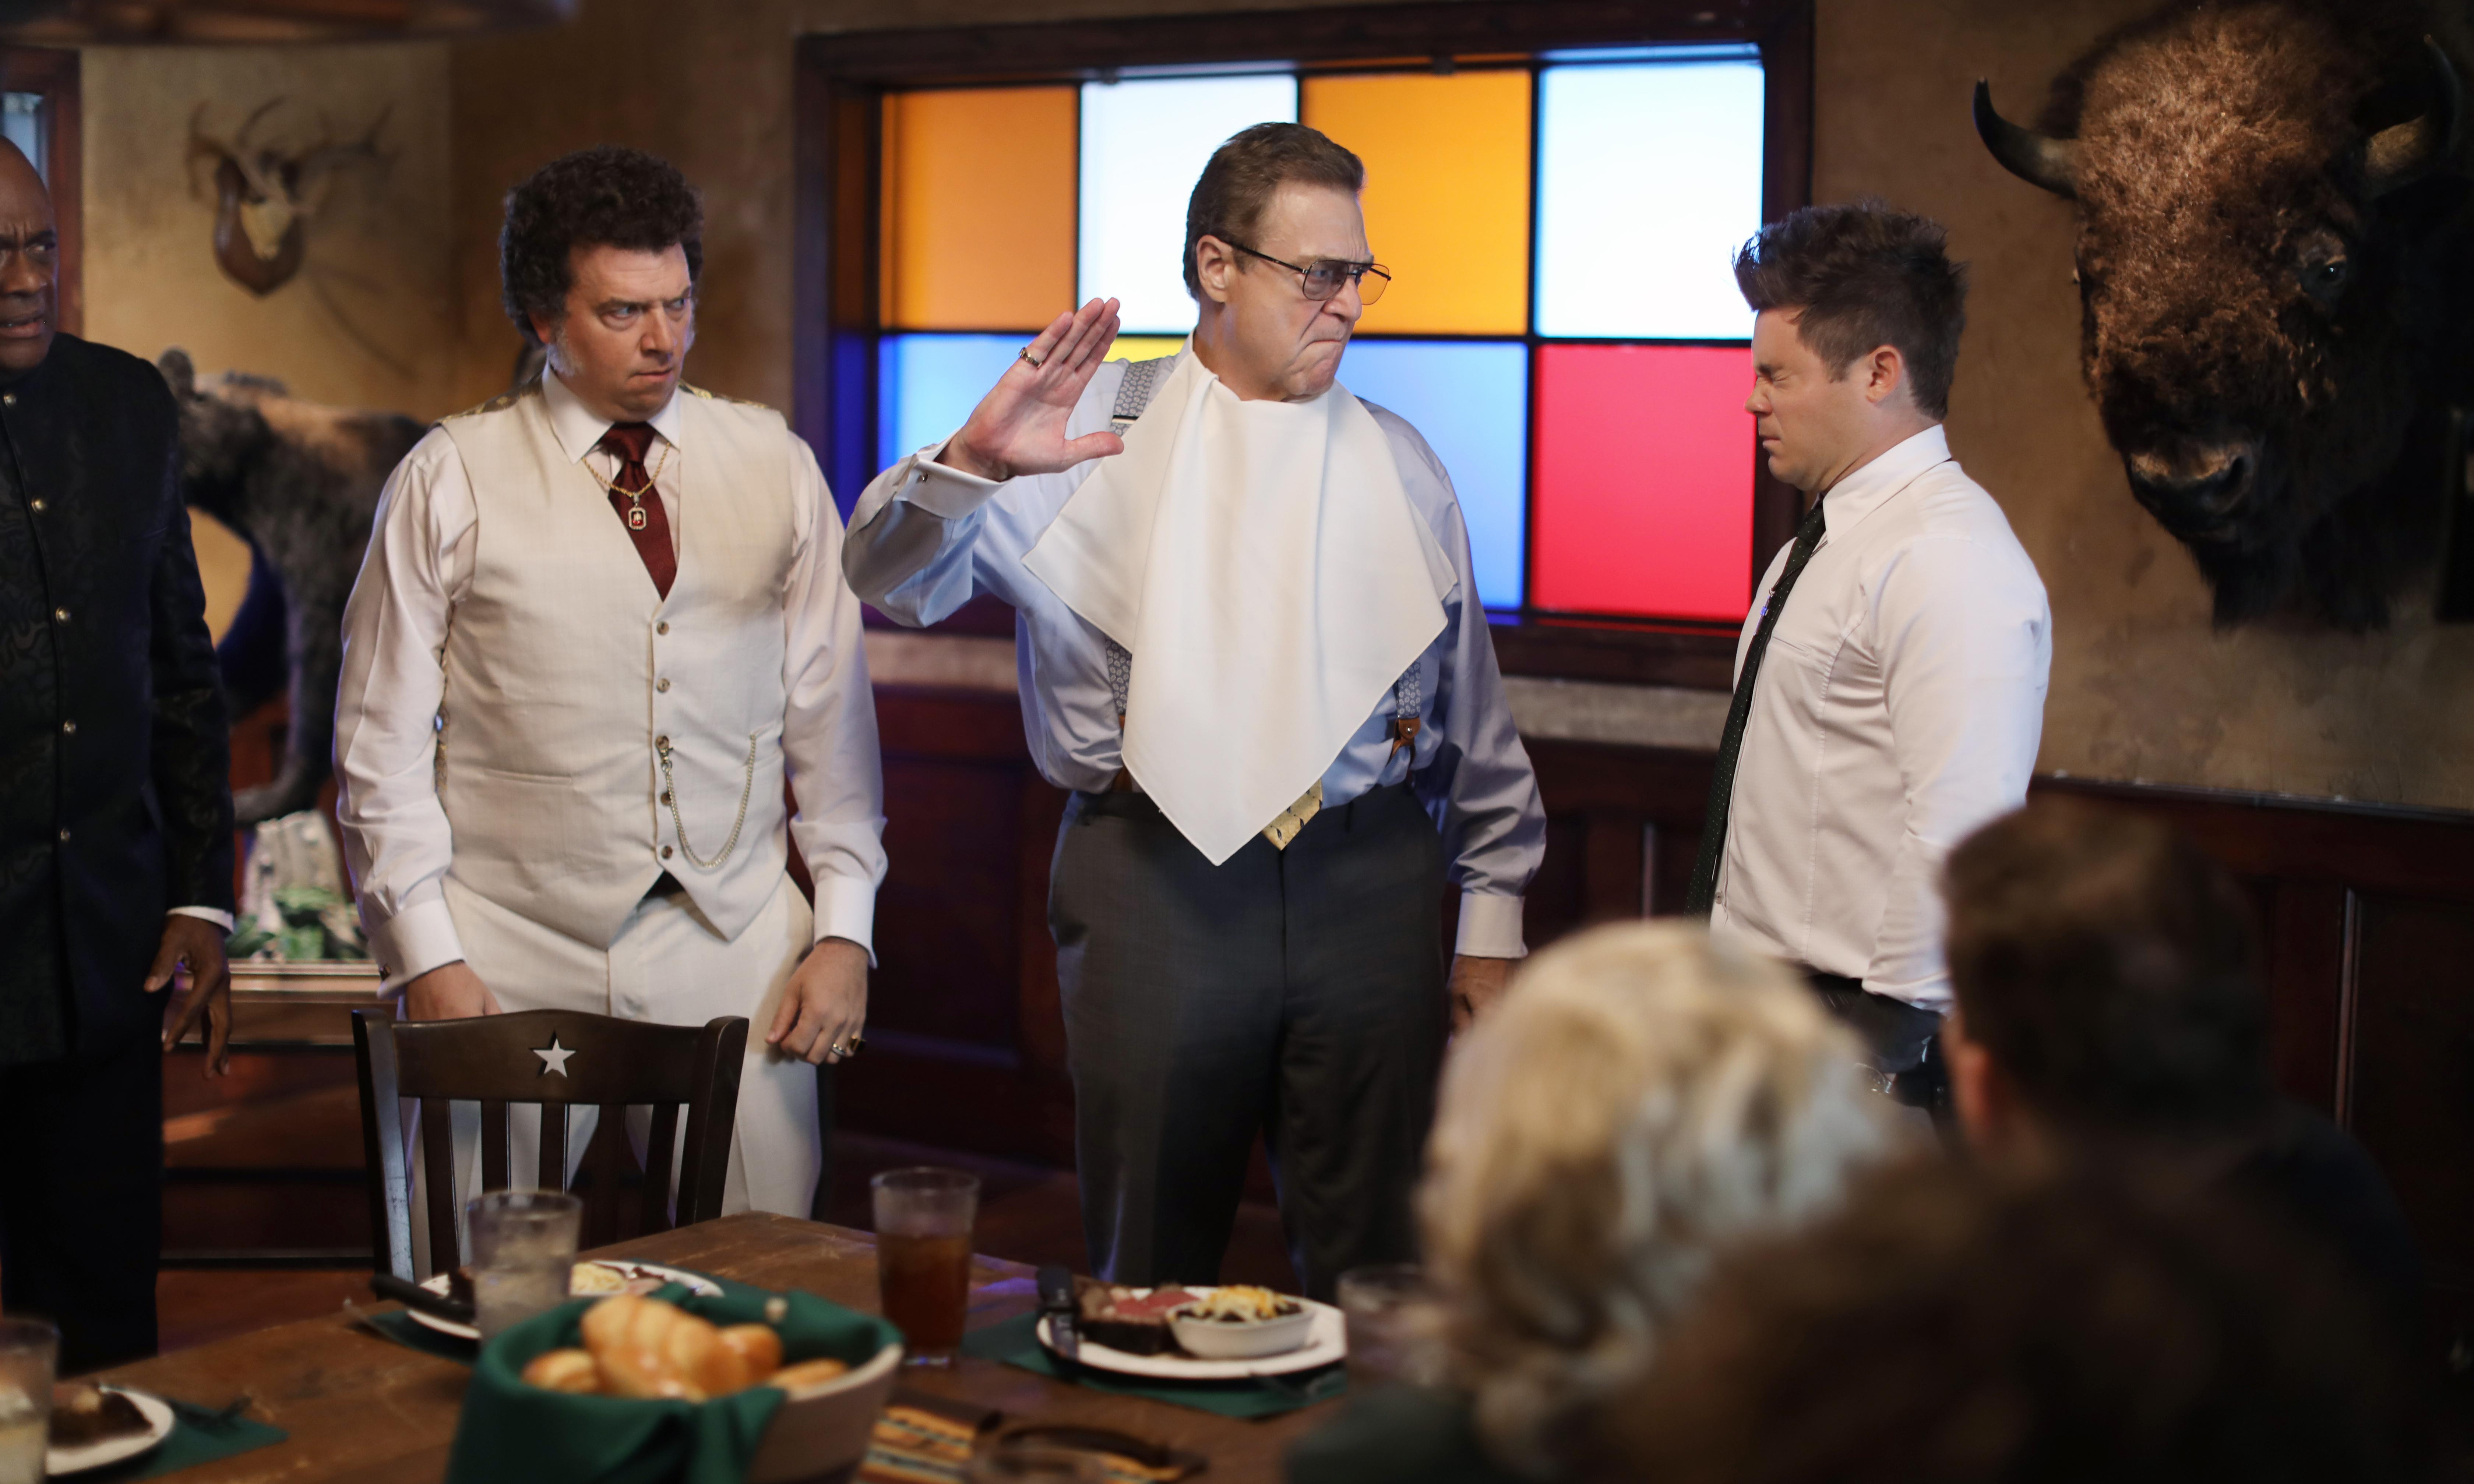 TV tonight: Danny McBride and John Goodman take on the televangelists